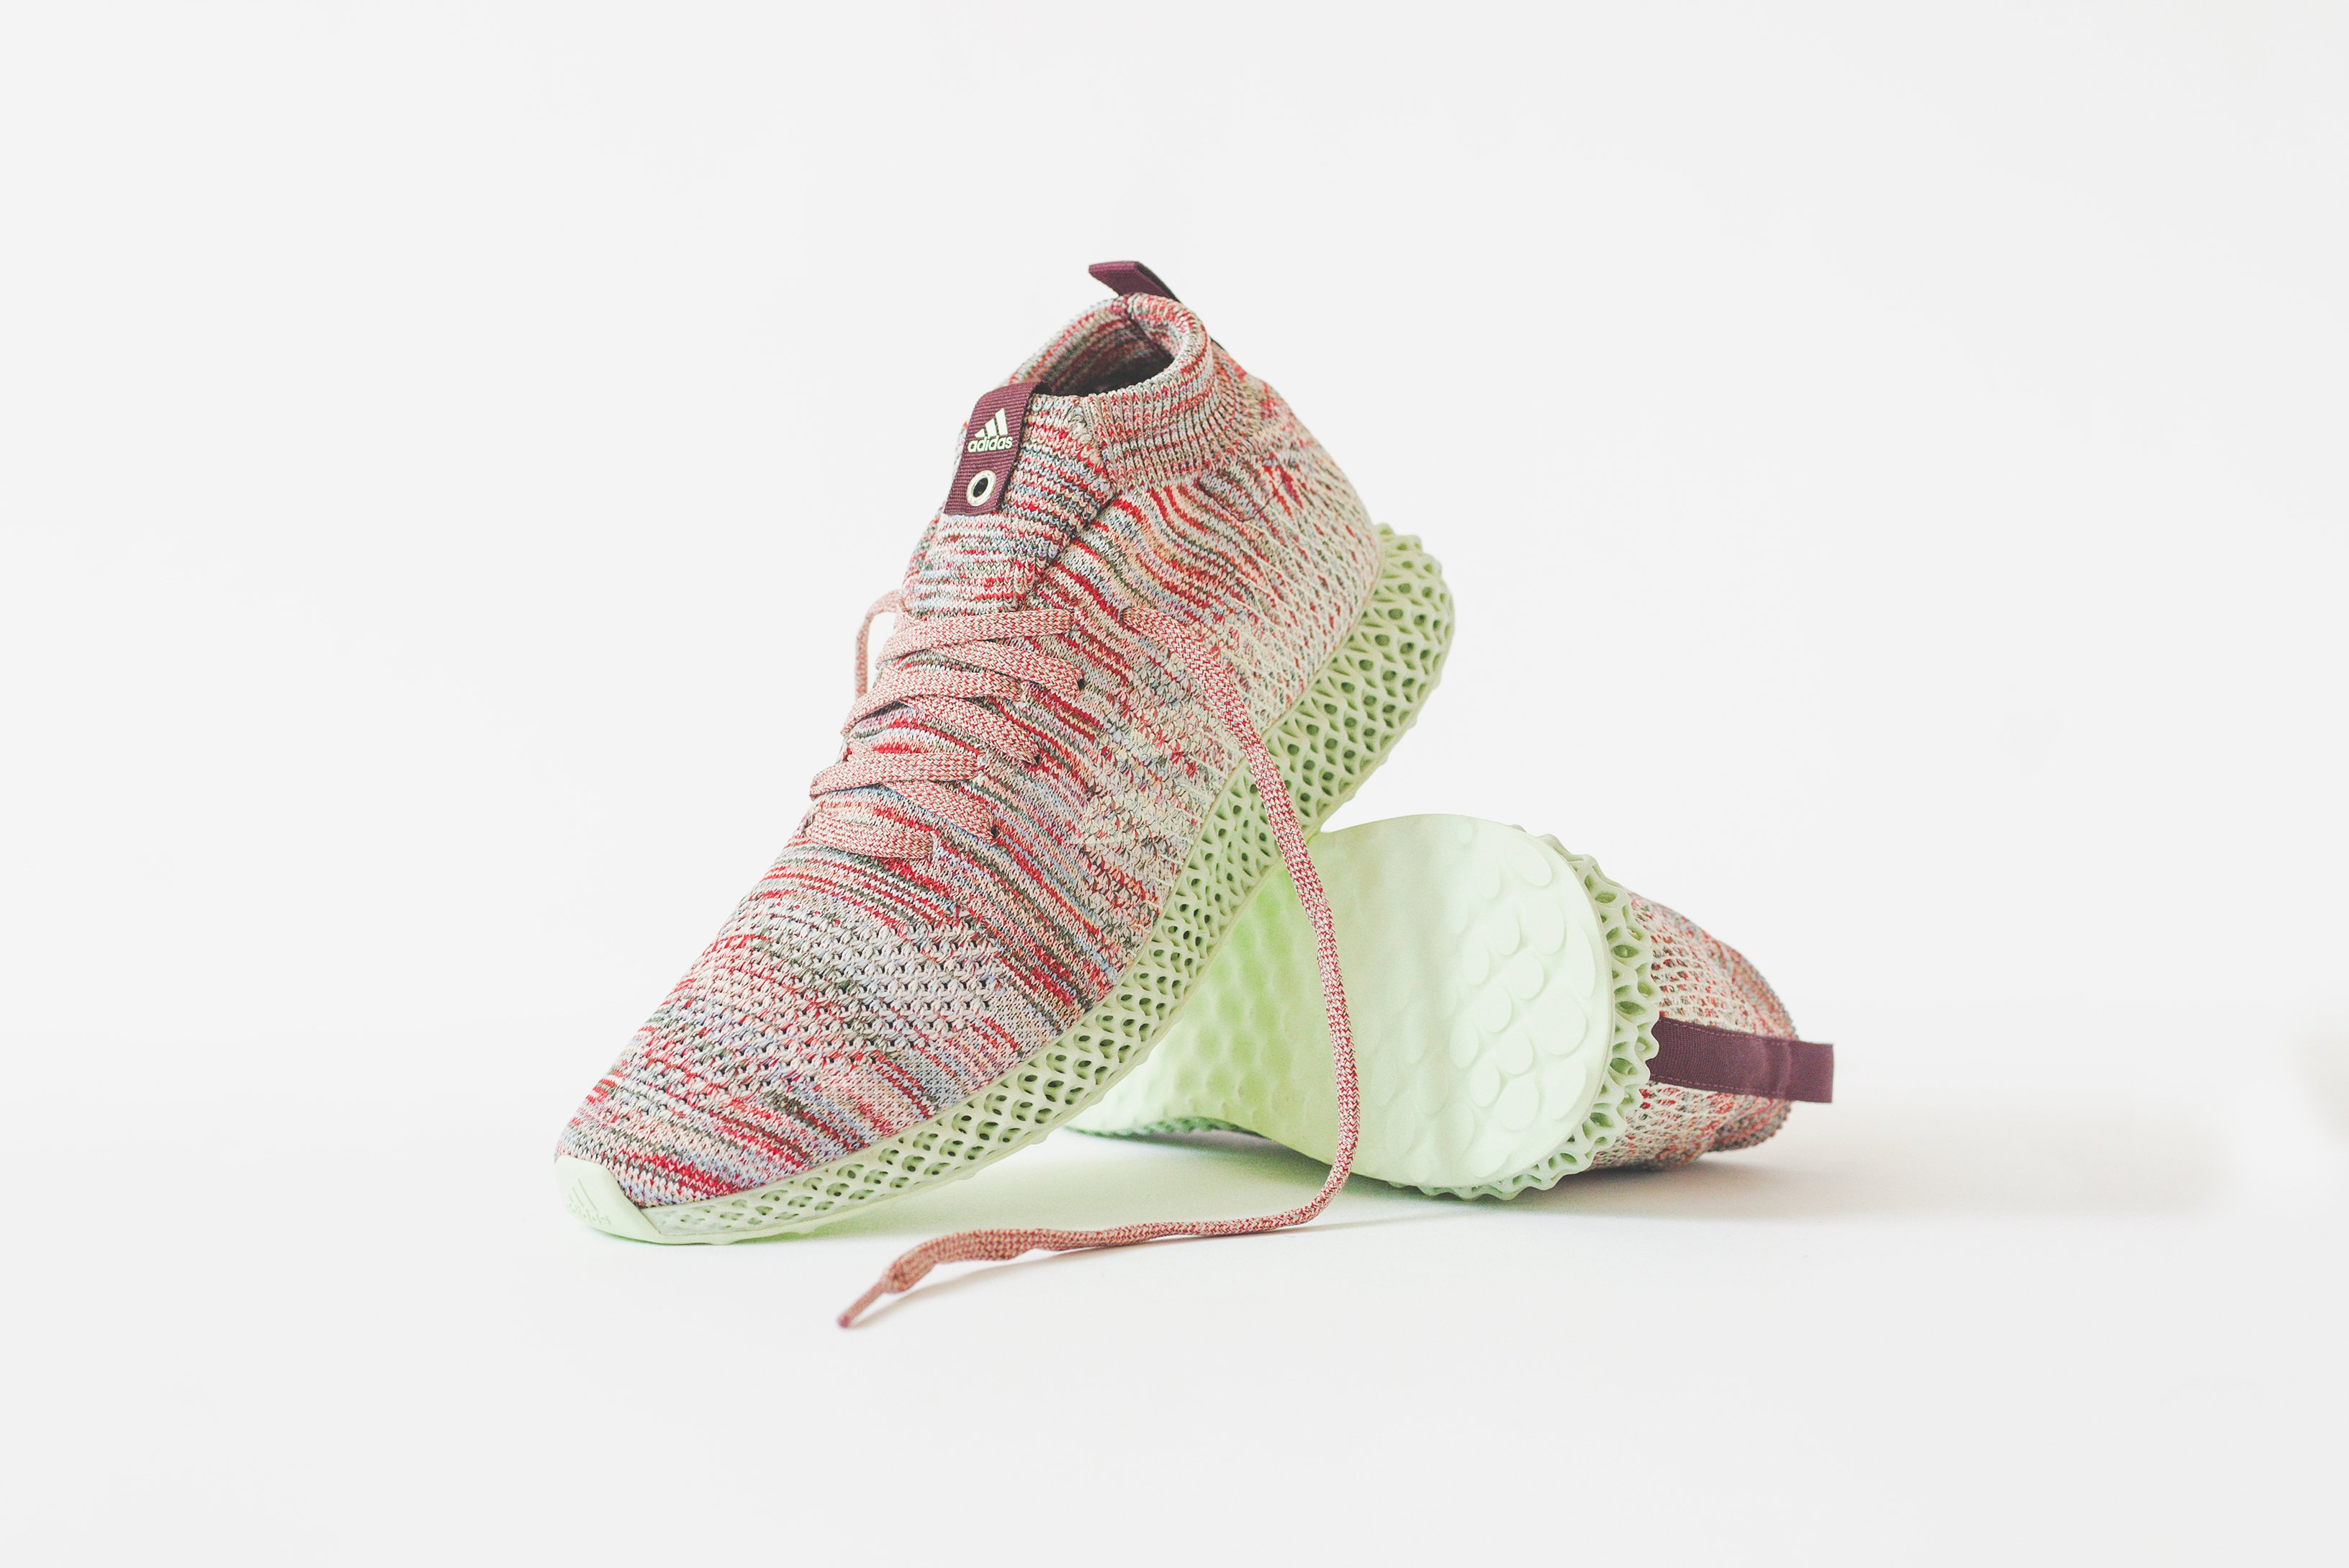 timeless design a4896 34589 A closer Look At The KITH x adidas Consortium Futurecraft 4D